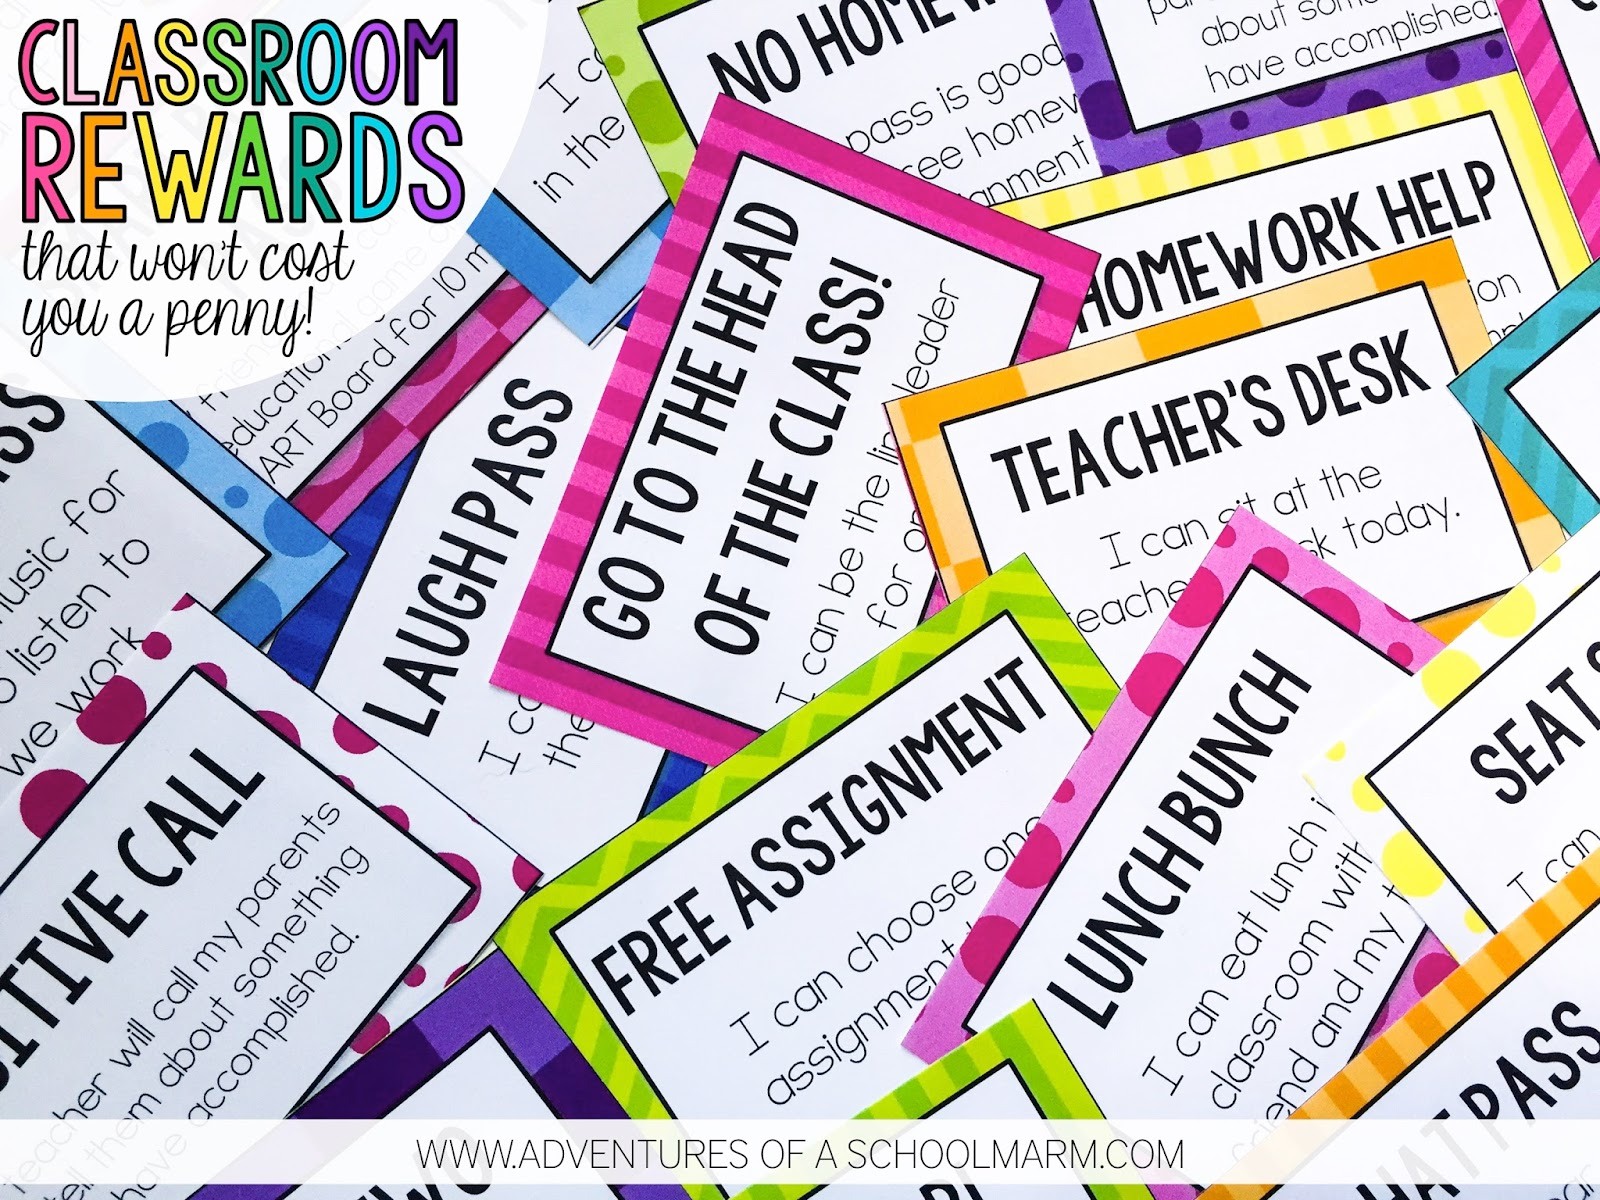 Need a classroom management system that motivates your students, but doesn't cost a lot? Academic optimism is the secret ingredient to student motivation. Reward coupons are just one way I keep positivity thriving in my classroom!